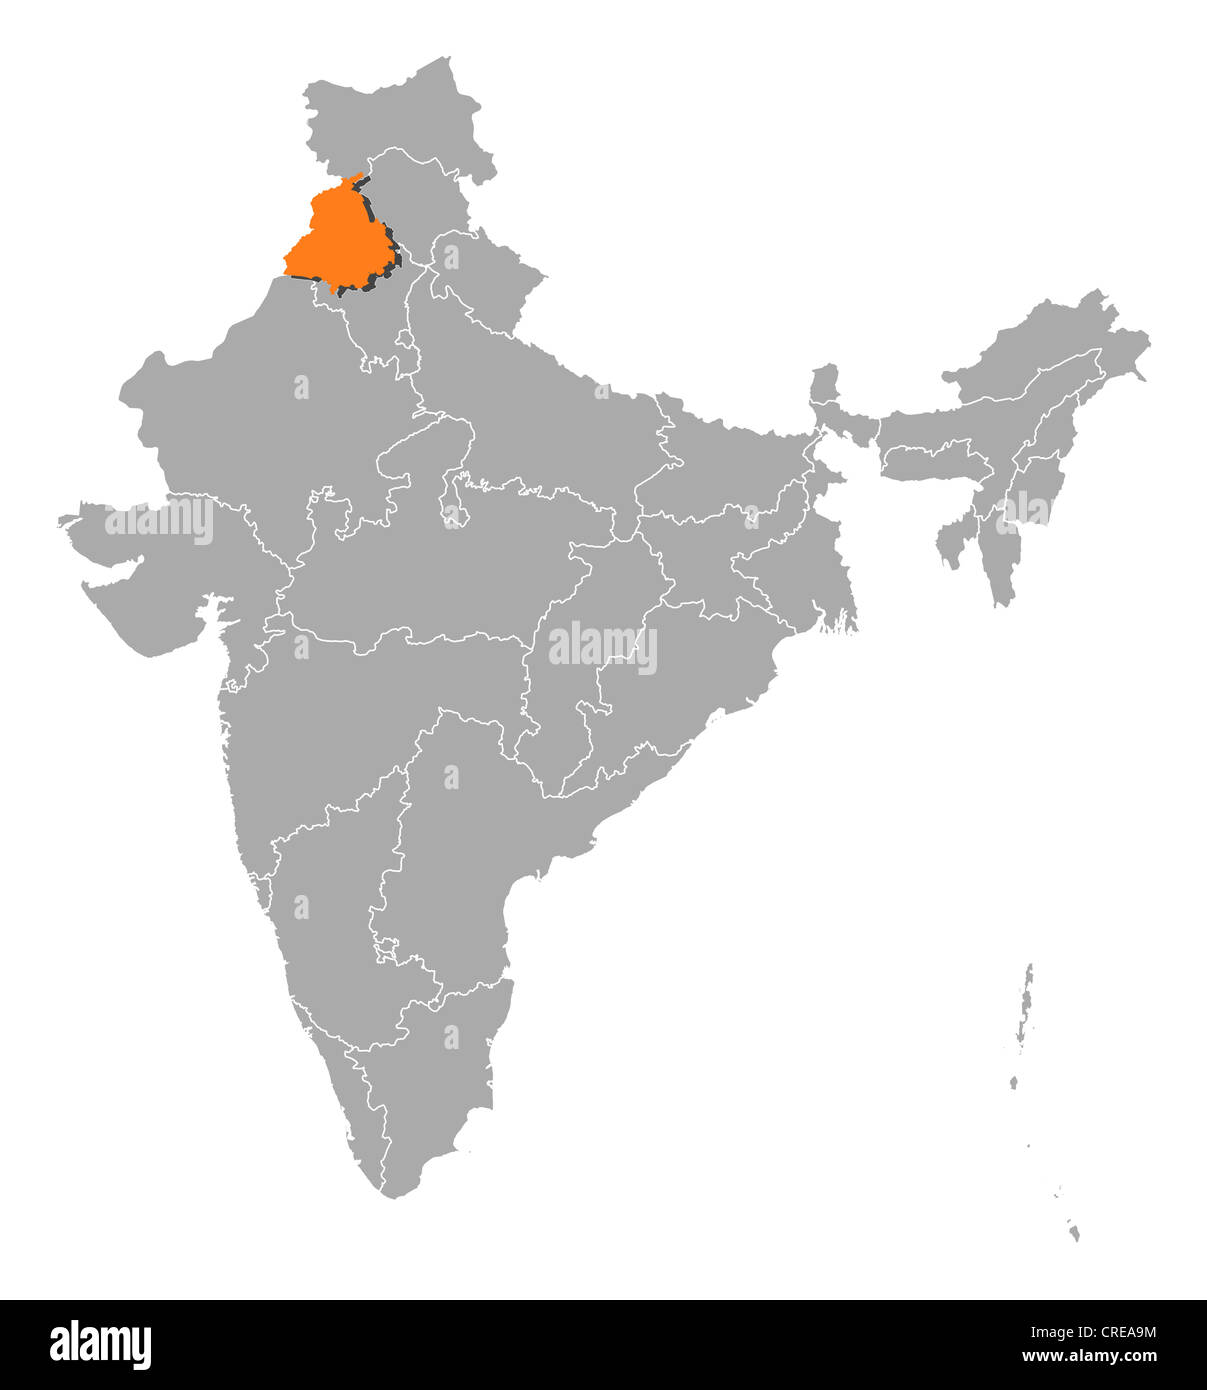 Political map of india with the several states where punjab is political map of india with the several states where punjab is highlighted buycottarizona Gallery